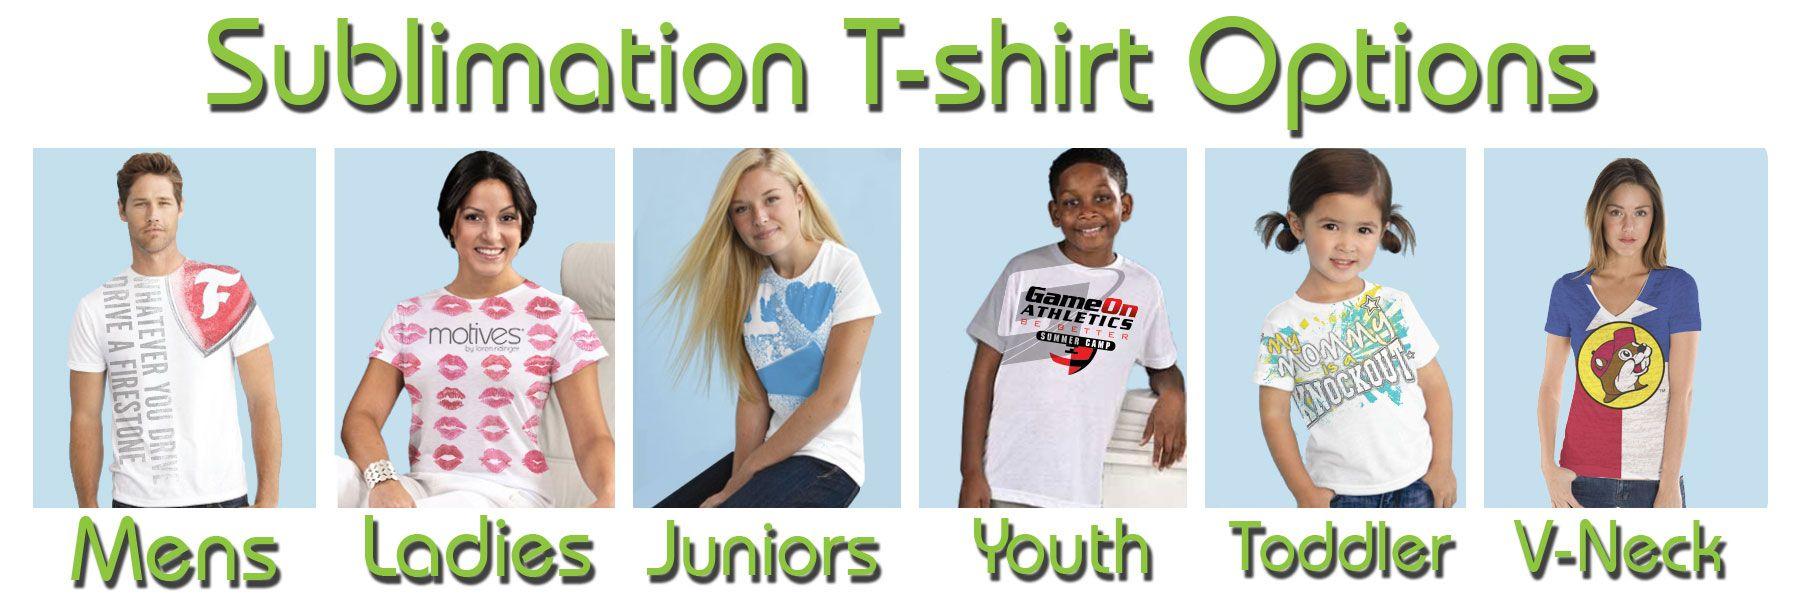 Which is Best with Dye Sublimation Printing on T-shirts? (1